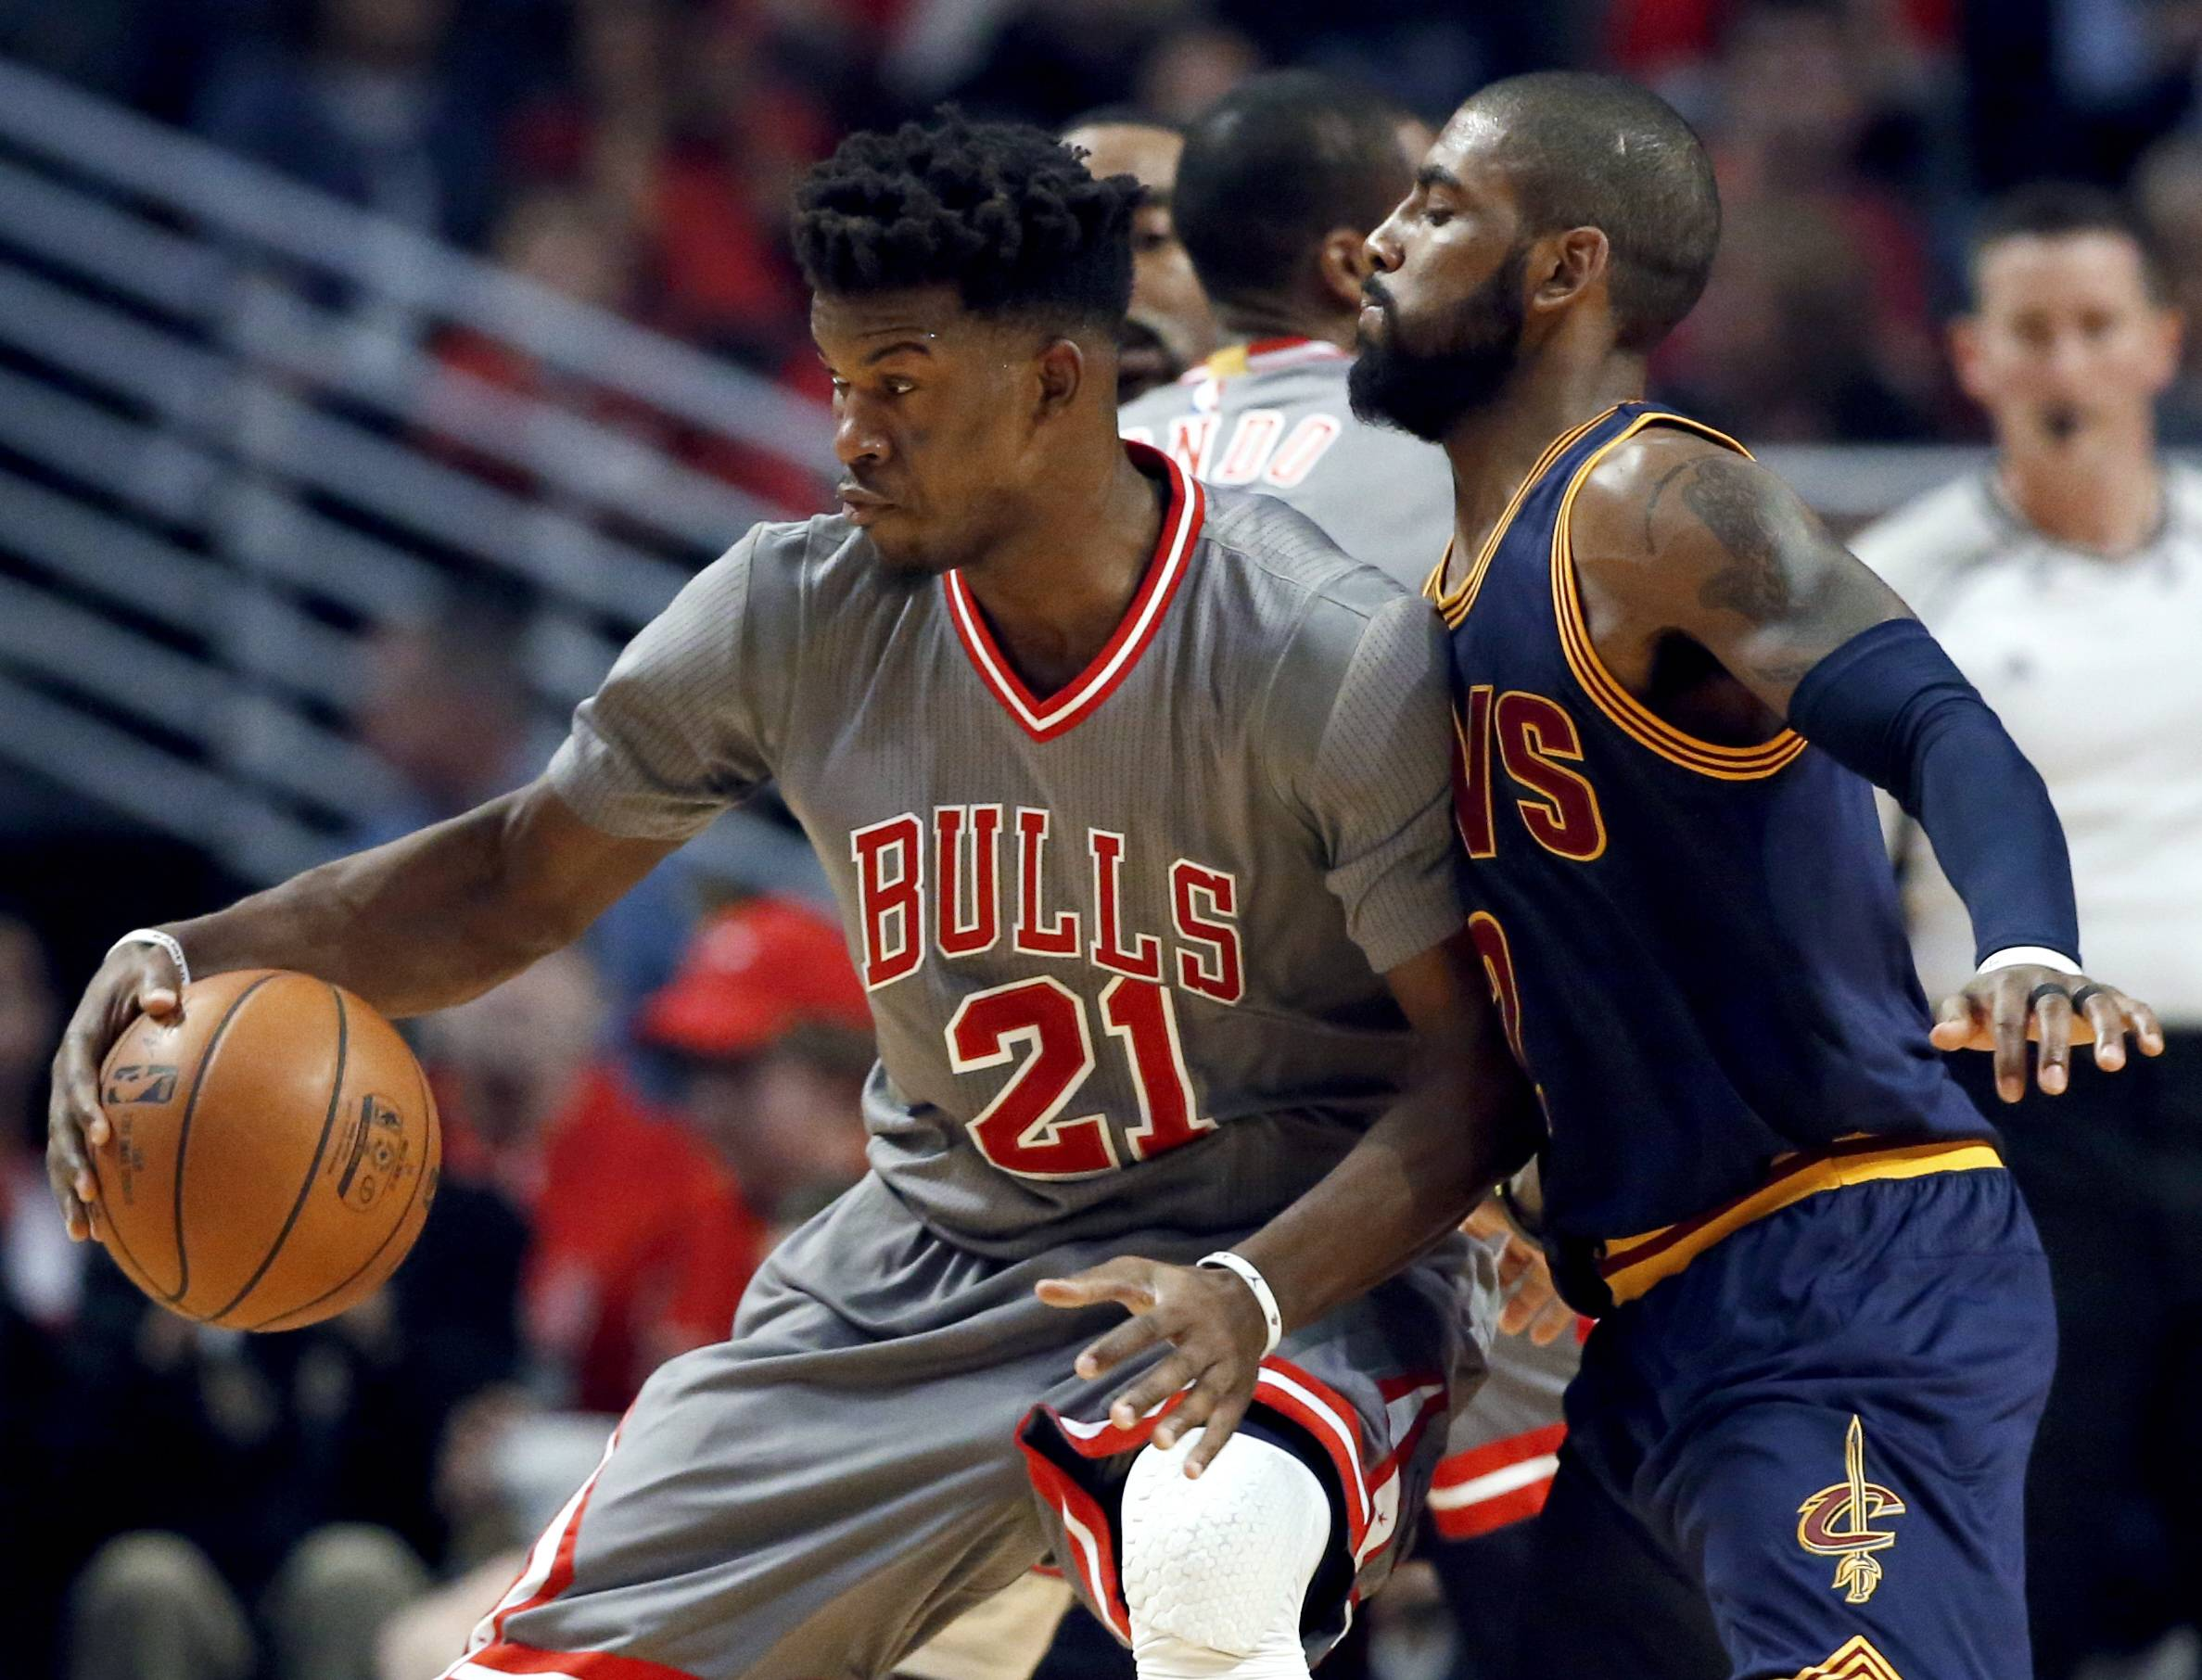 Chicago Bulls guard guard Jimmy Butler, left, works against Cleveland Cavaliers guard Kyrie Irving during the first half of an NBA basketball game Friday, Dec. 2, 2016, in Chicago. (AP Photo/Nam Y. Huh)